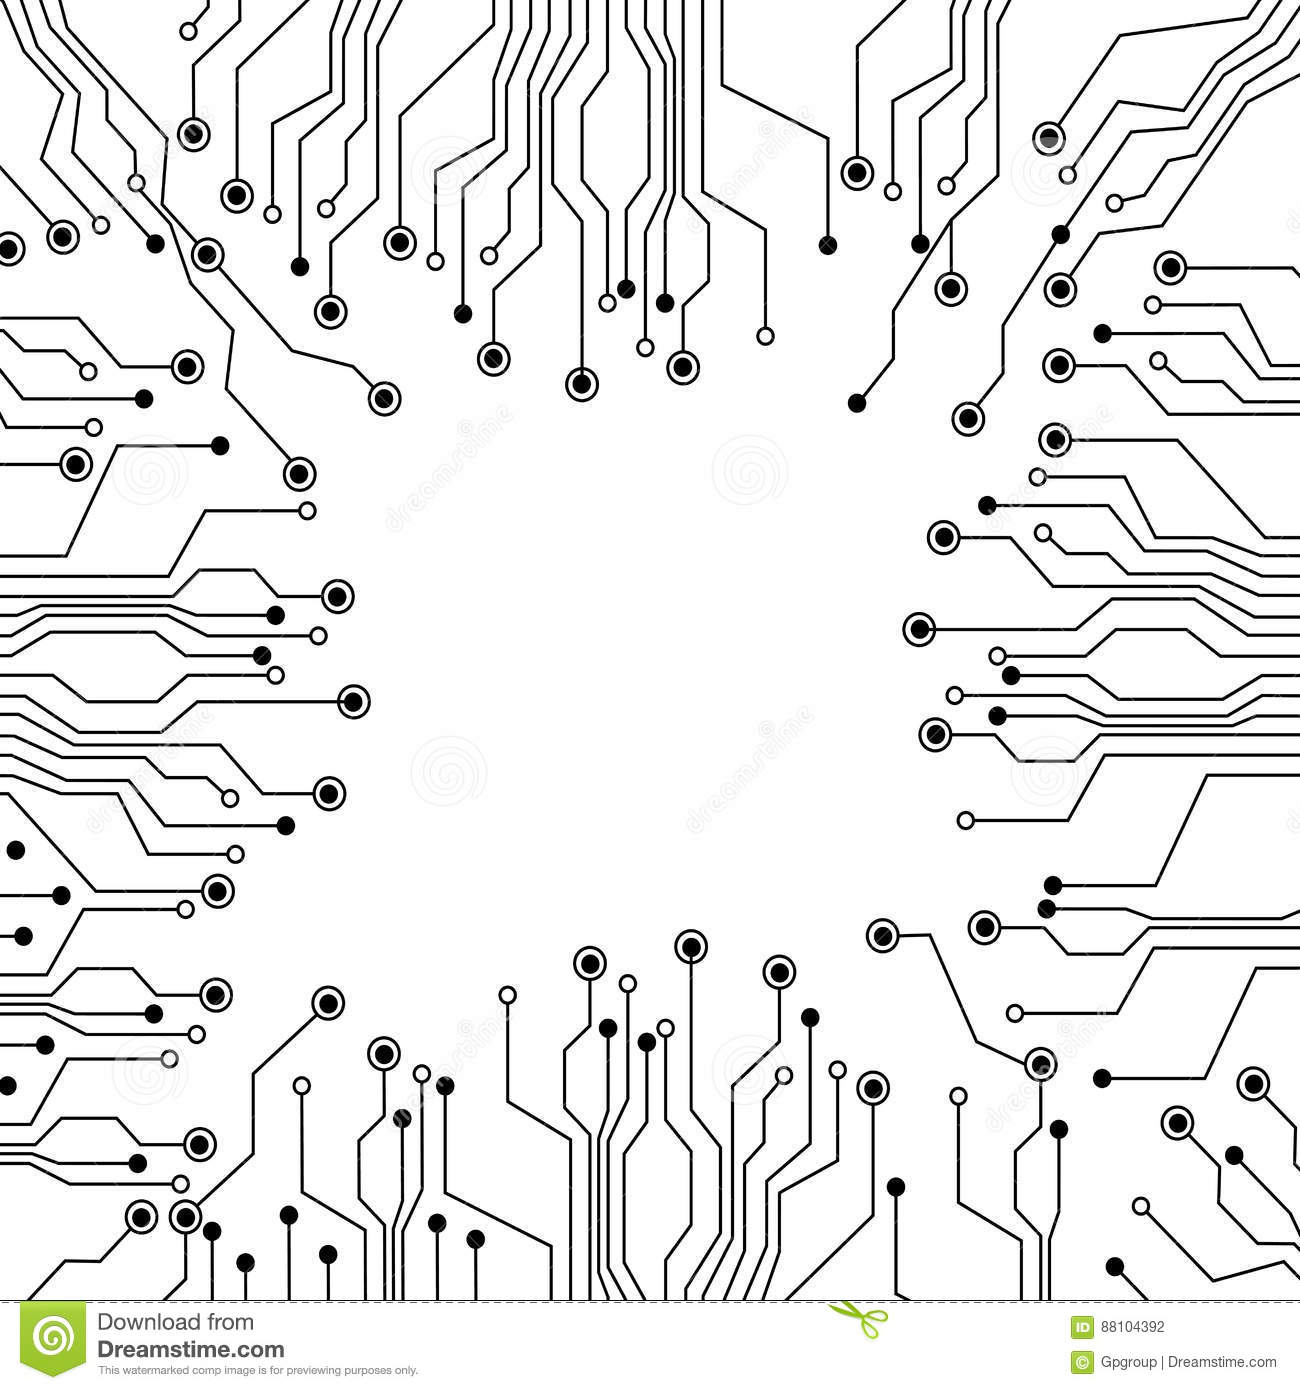 Figure Electrical Circuits Icon Stock Illustration